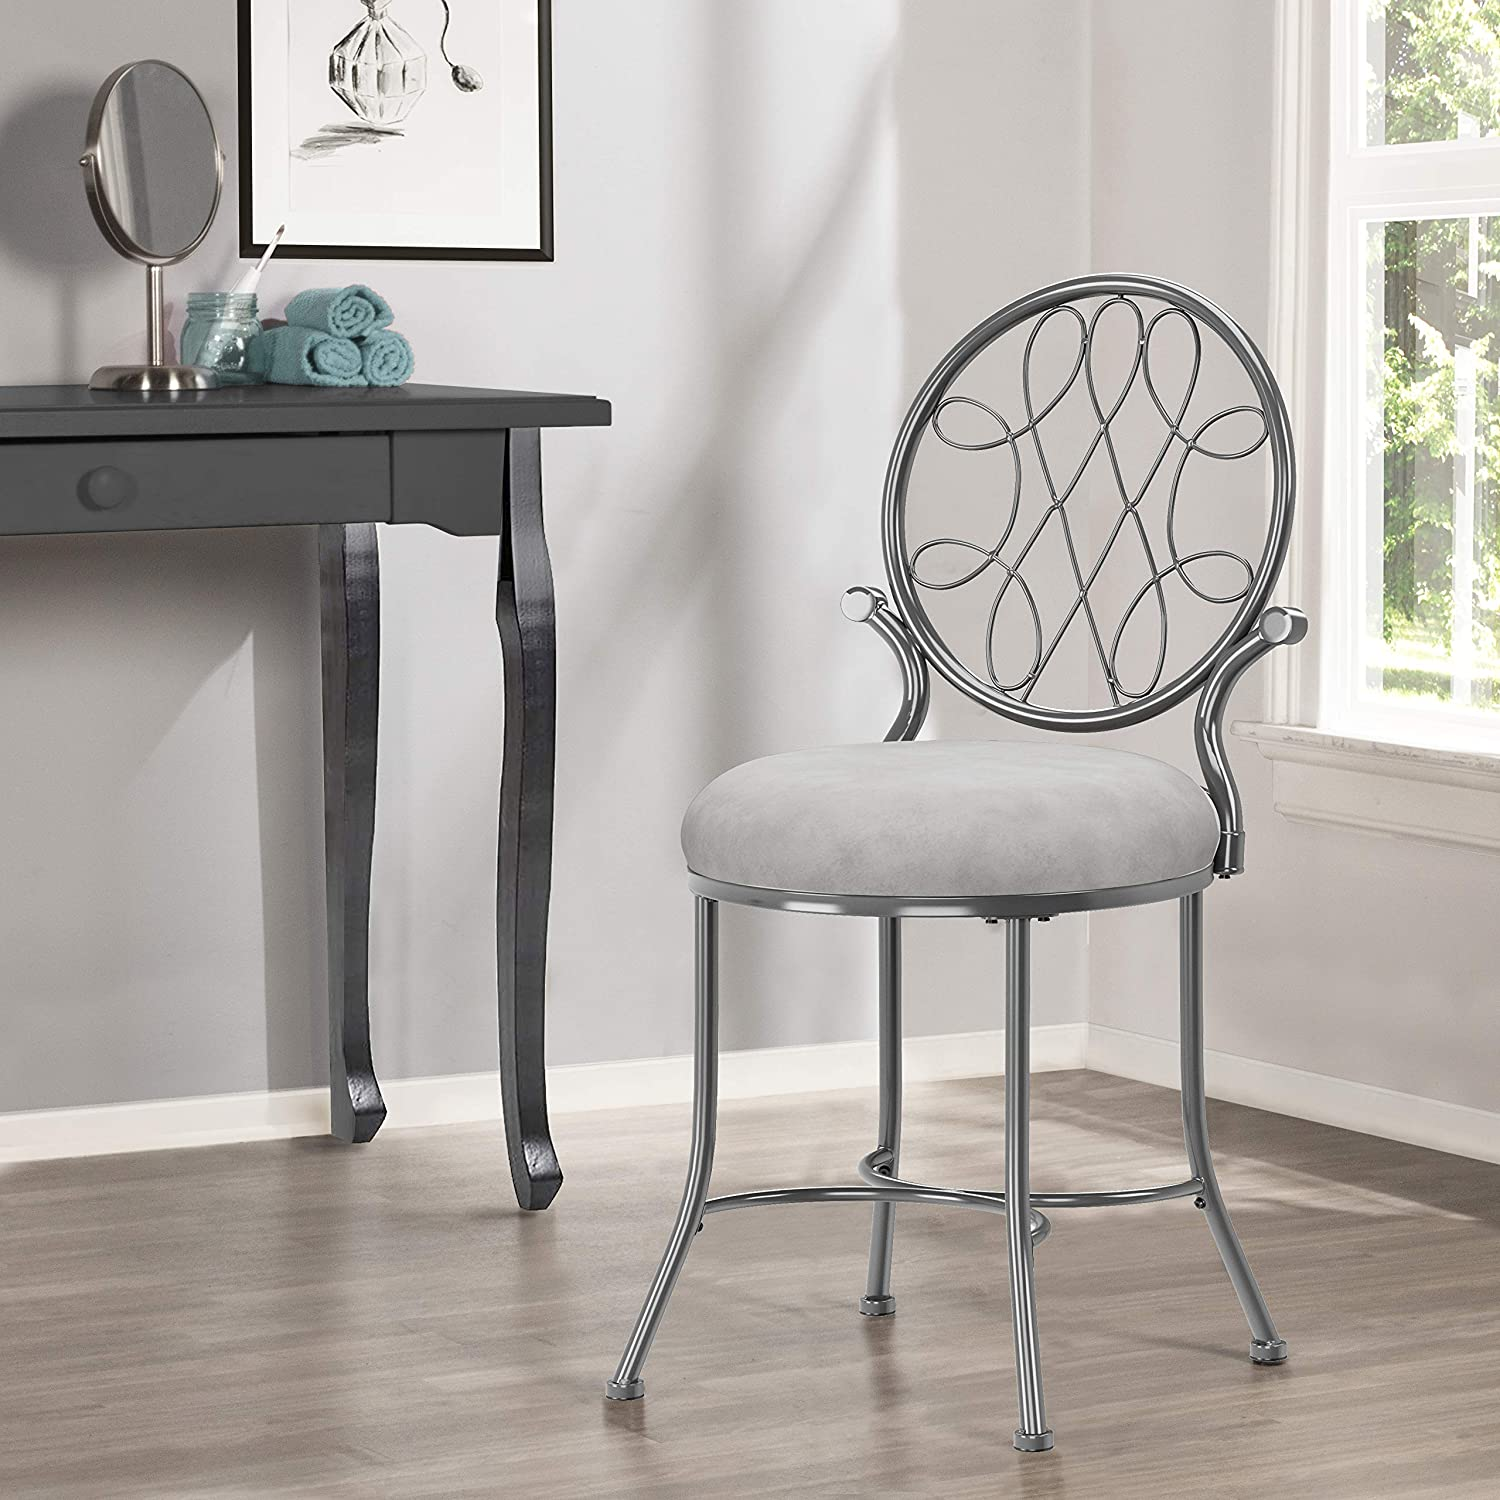 Hillsdale O'Malley Vanity Stool with Pattern Meta 2021 new Free shipping / New Design Spiral